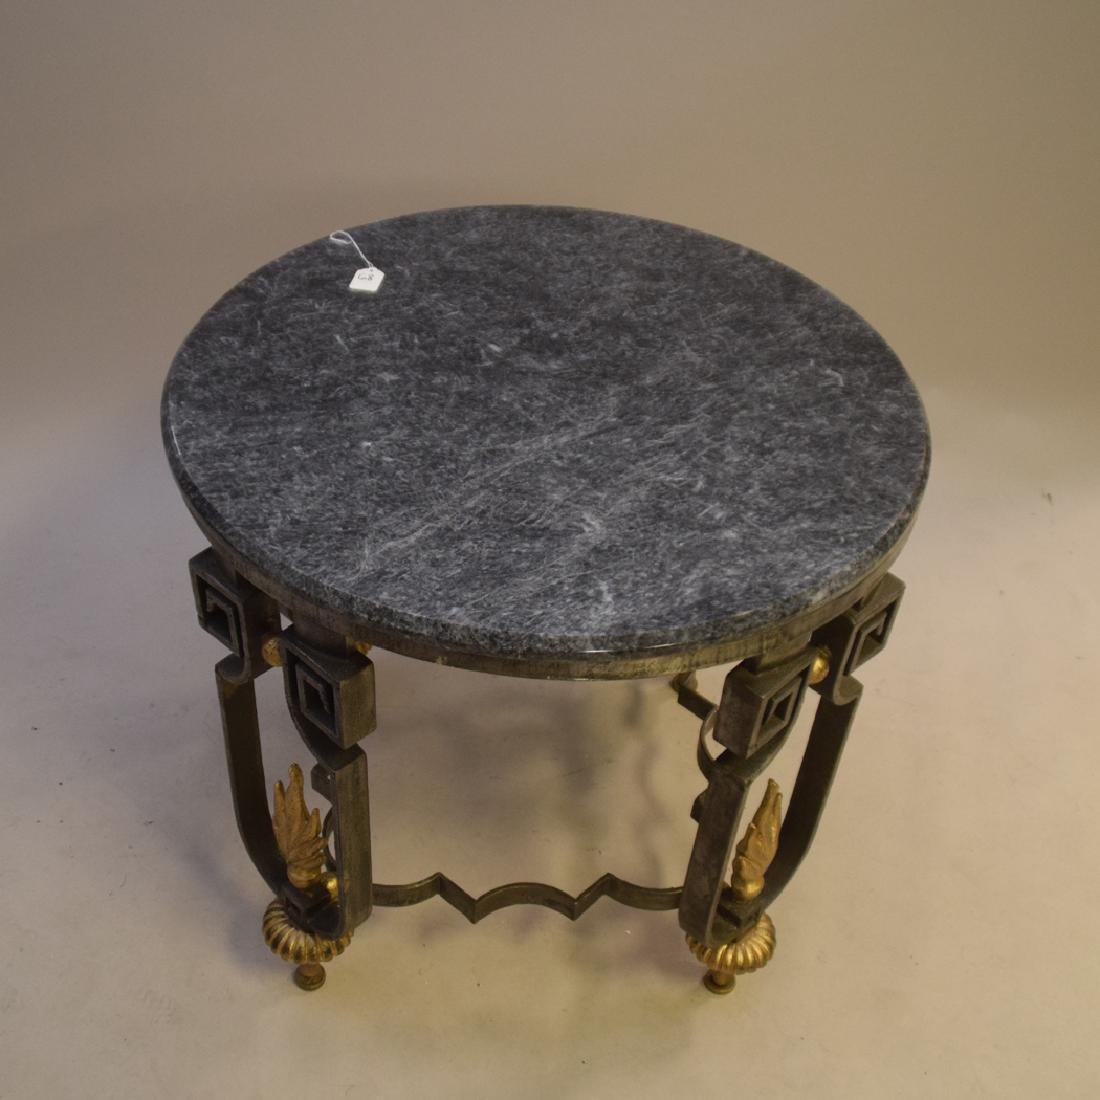 Cast iron lamp table with marble top, each leg with - 2